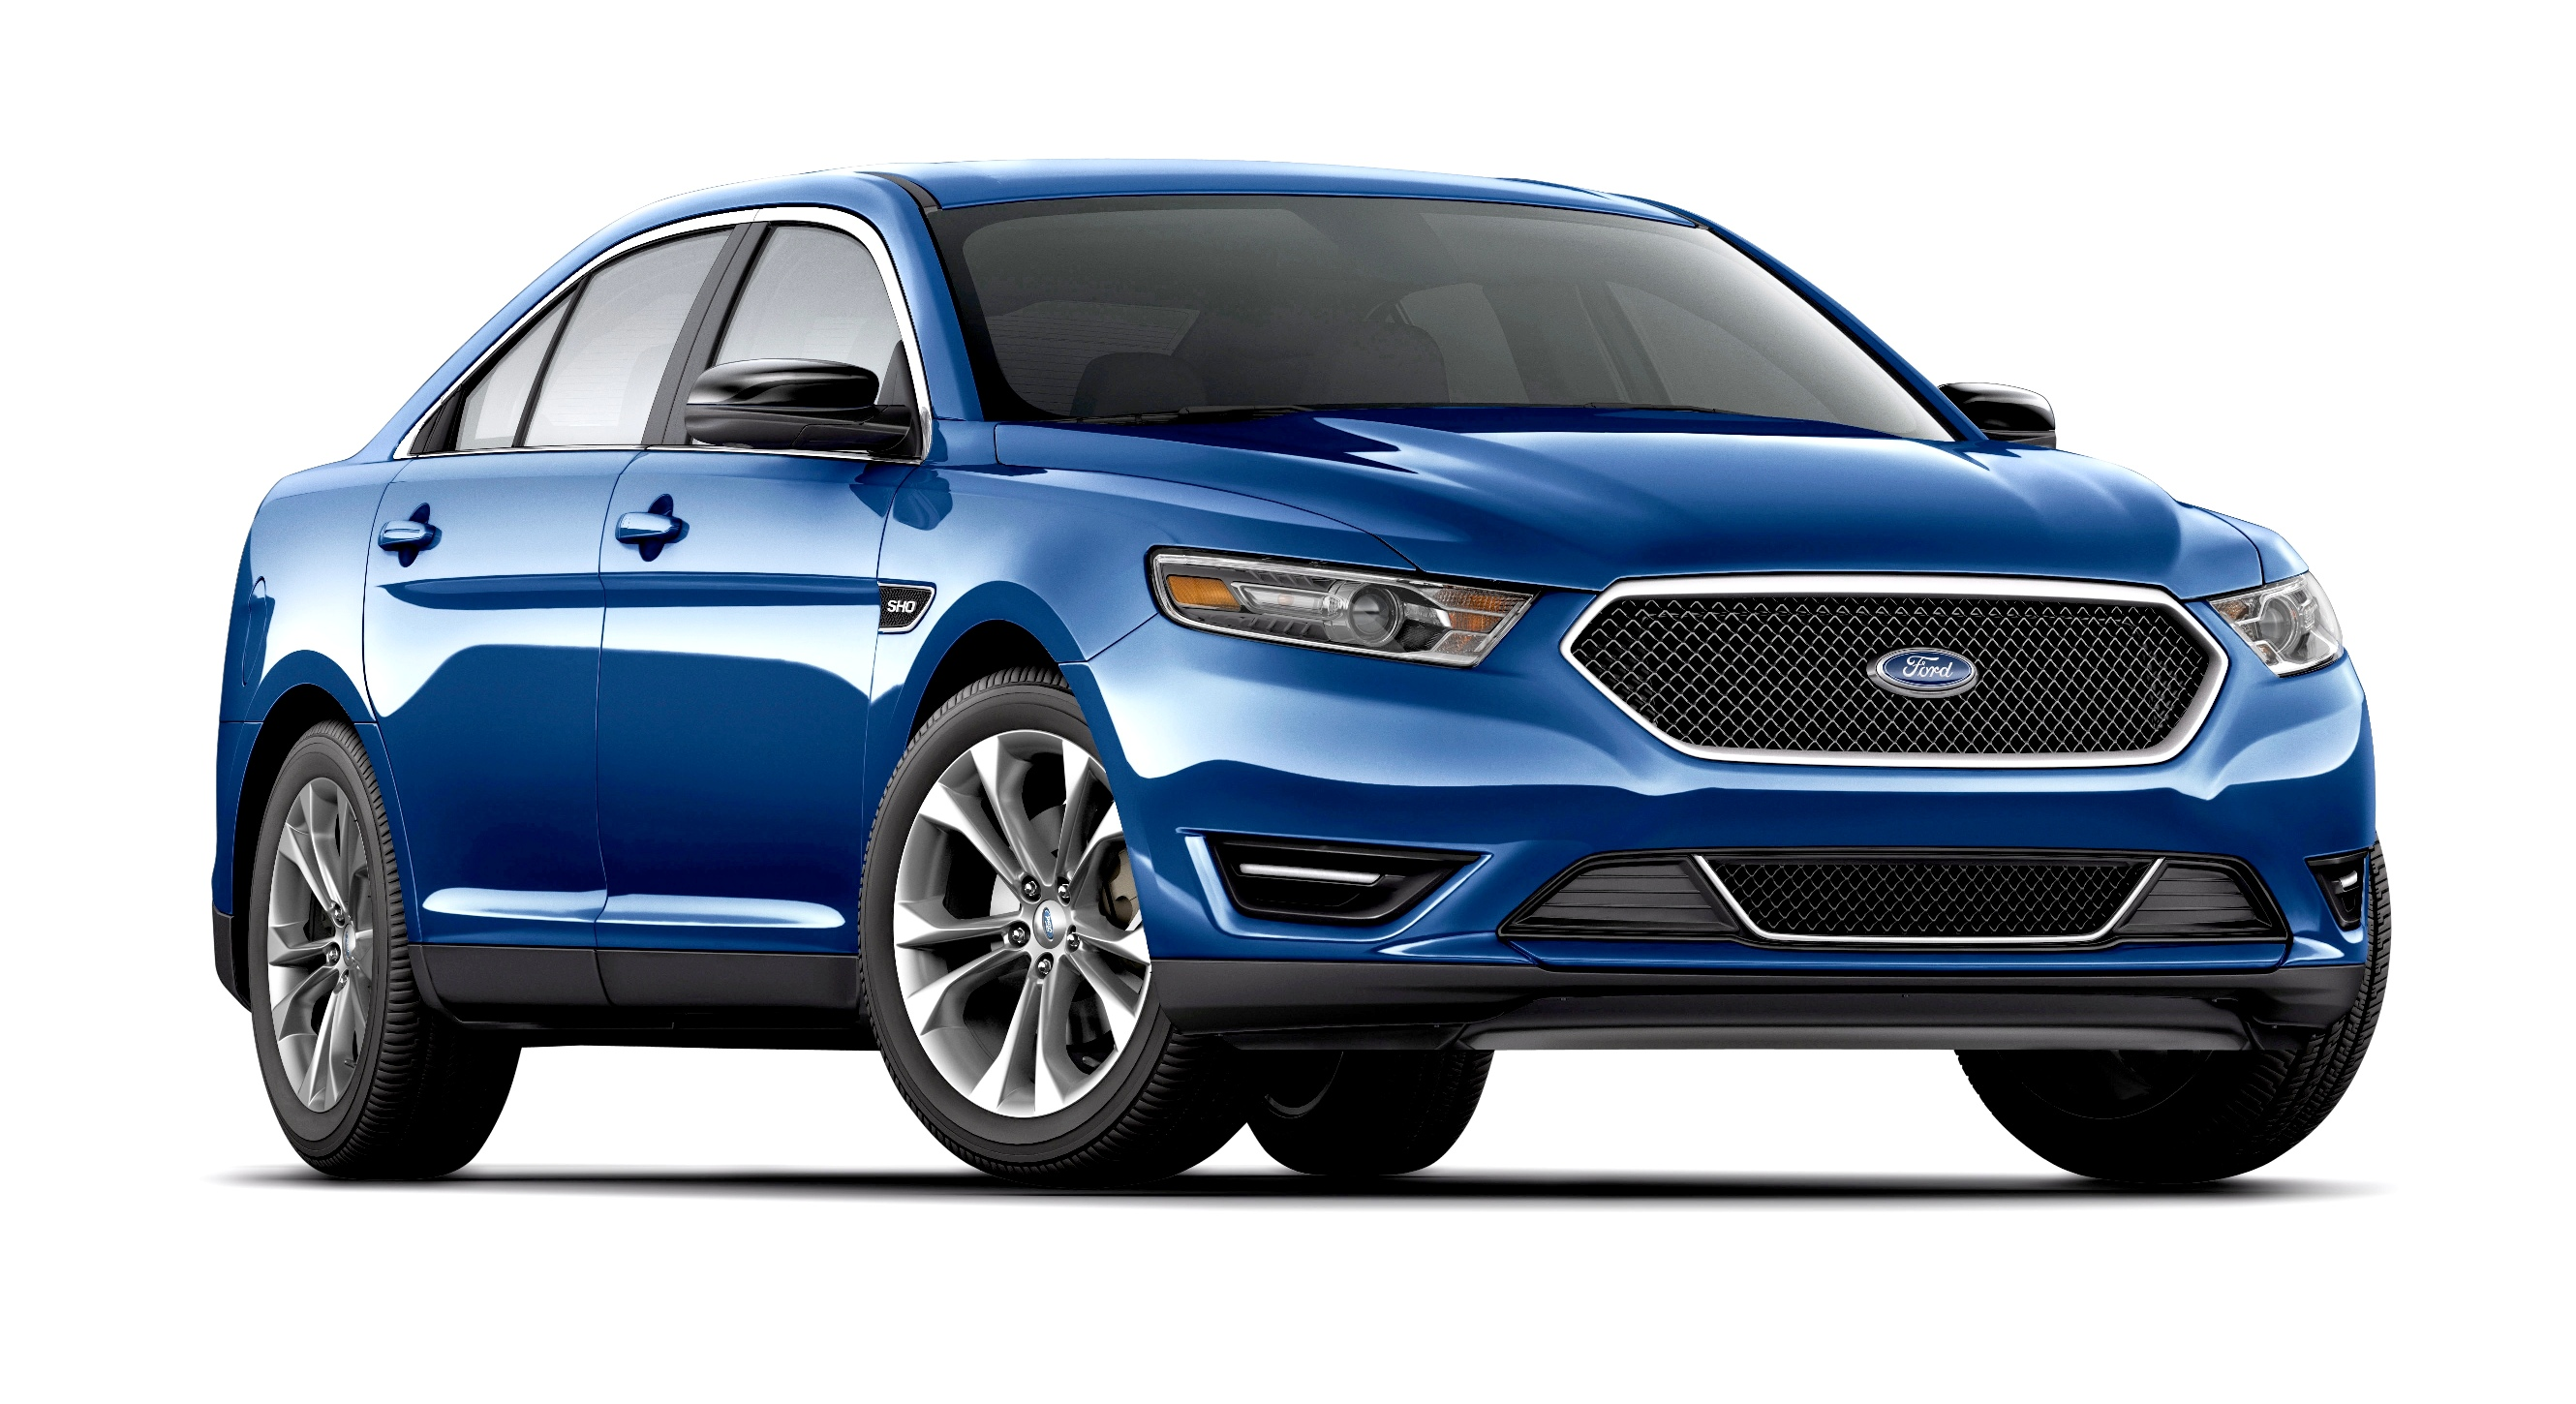 2014 ford taurus sho gallery 524235 top speed. Black Bedroom Furniture Sets. Home Design Ideas